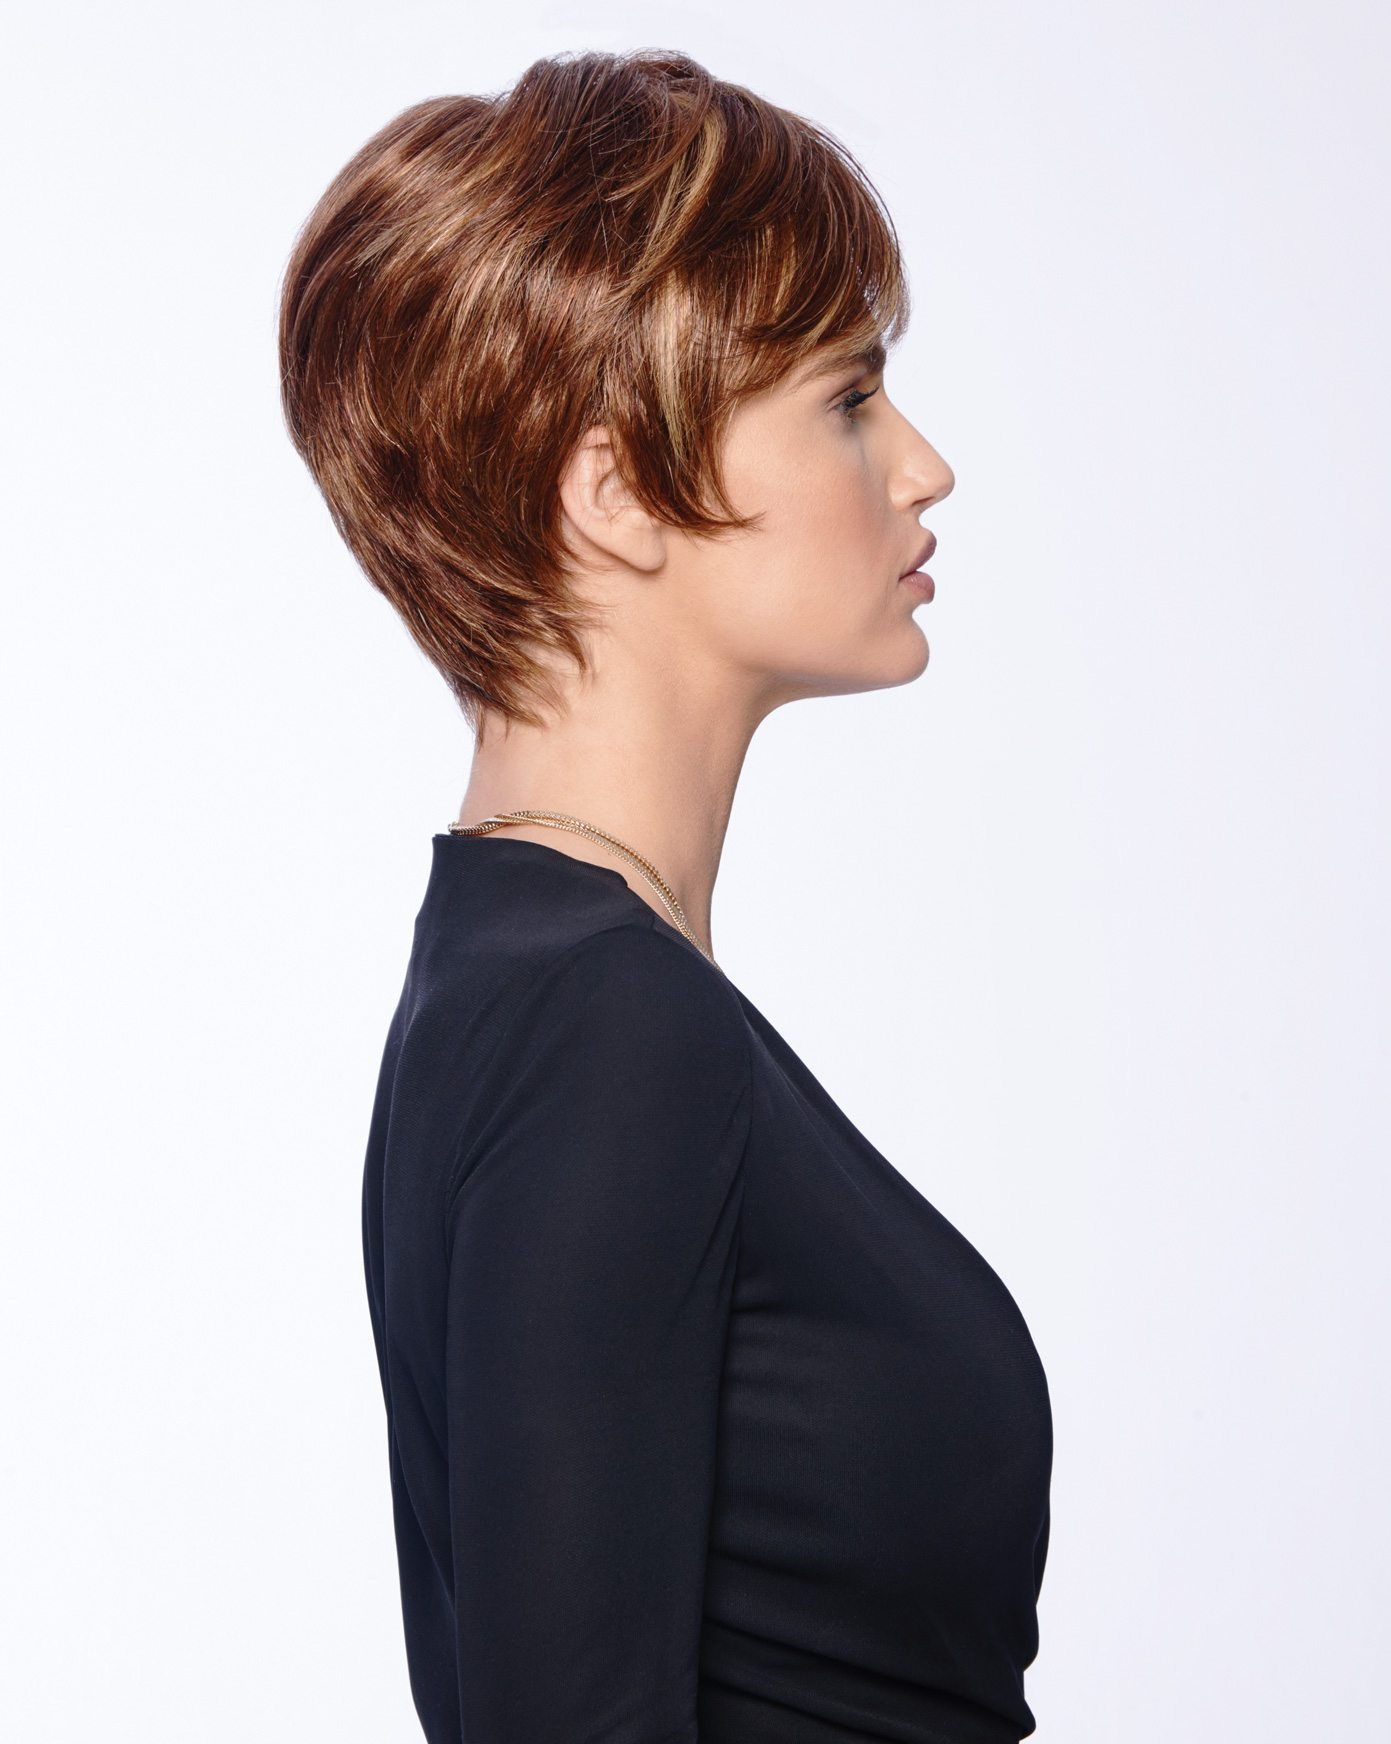 Always Wig Raquel Welch UK Collection - image Excite-Alt-Side-2 on https://purewigs.com